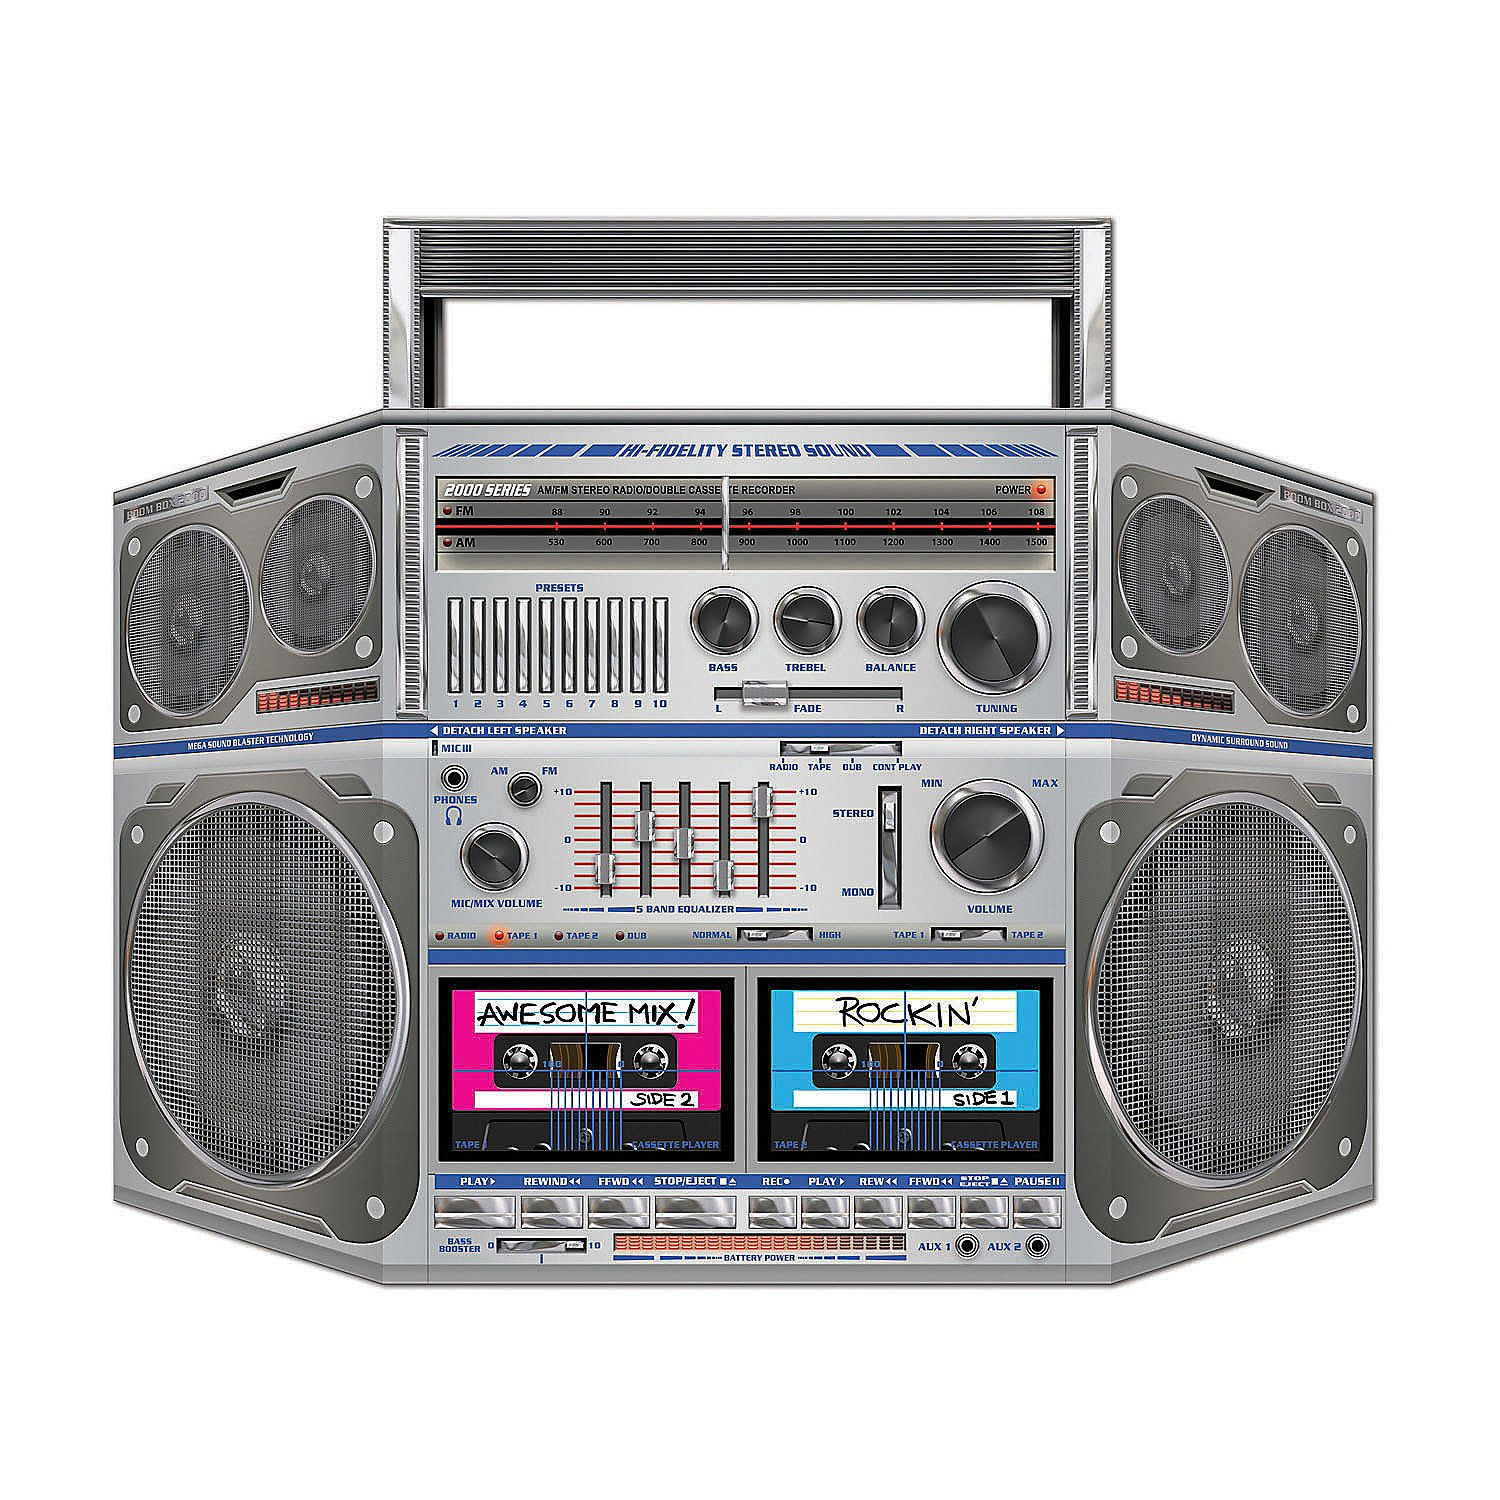 Awesome 80s Boombox Cardboard Stand Up Hip Hop Party Boombox 80s Party